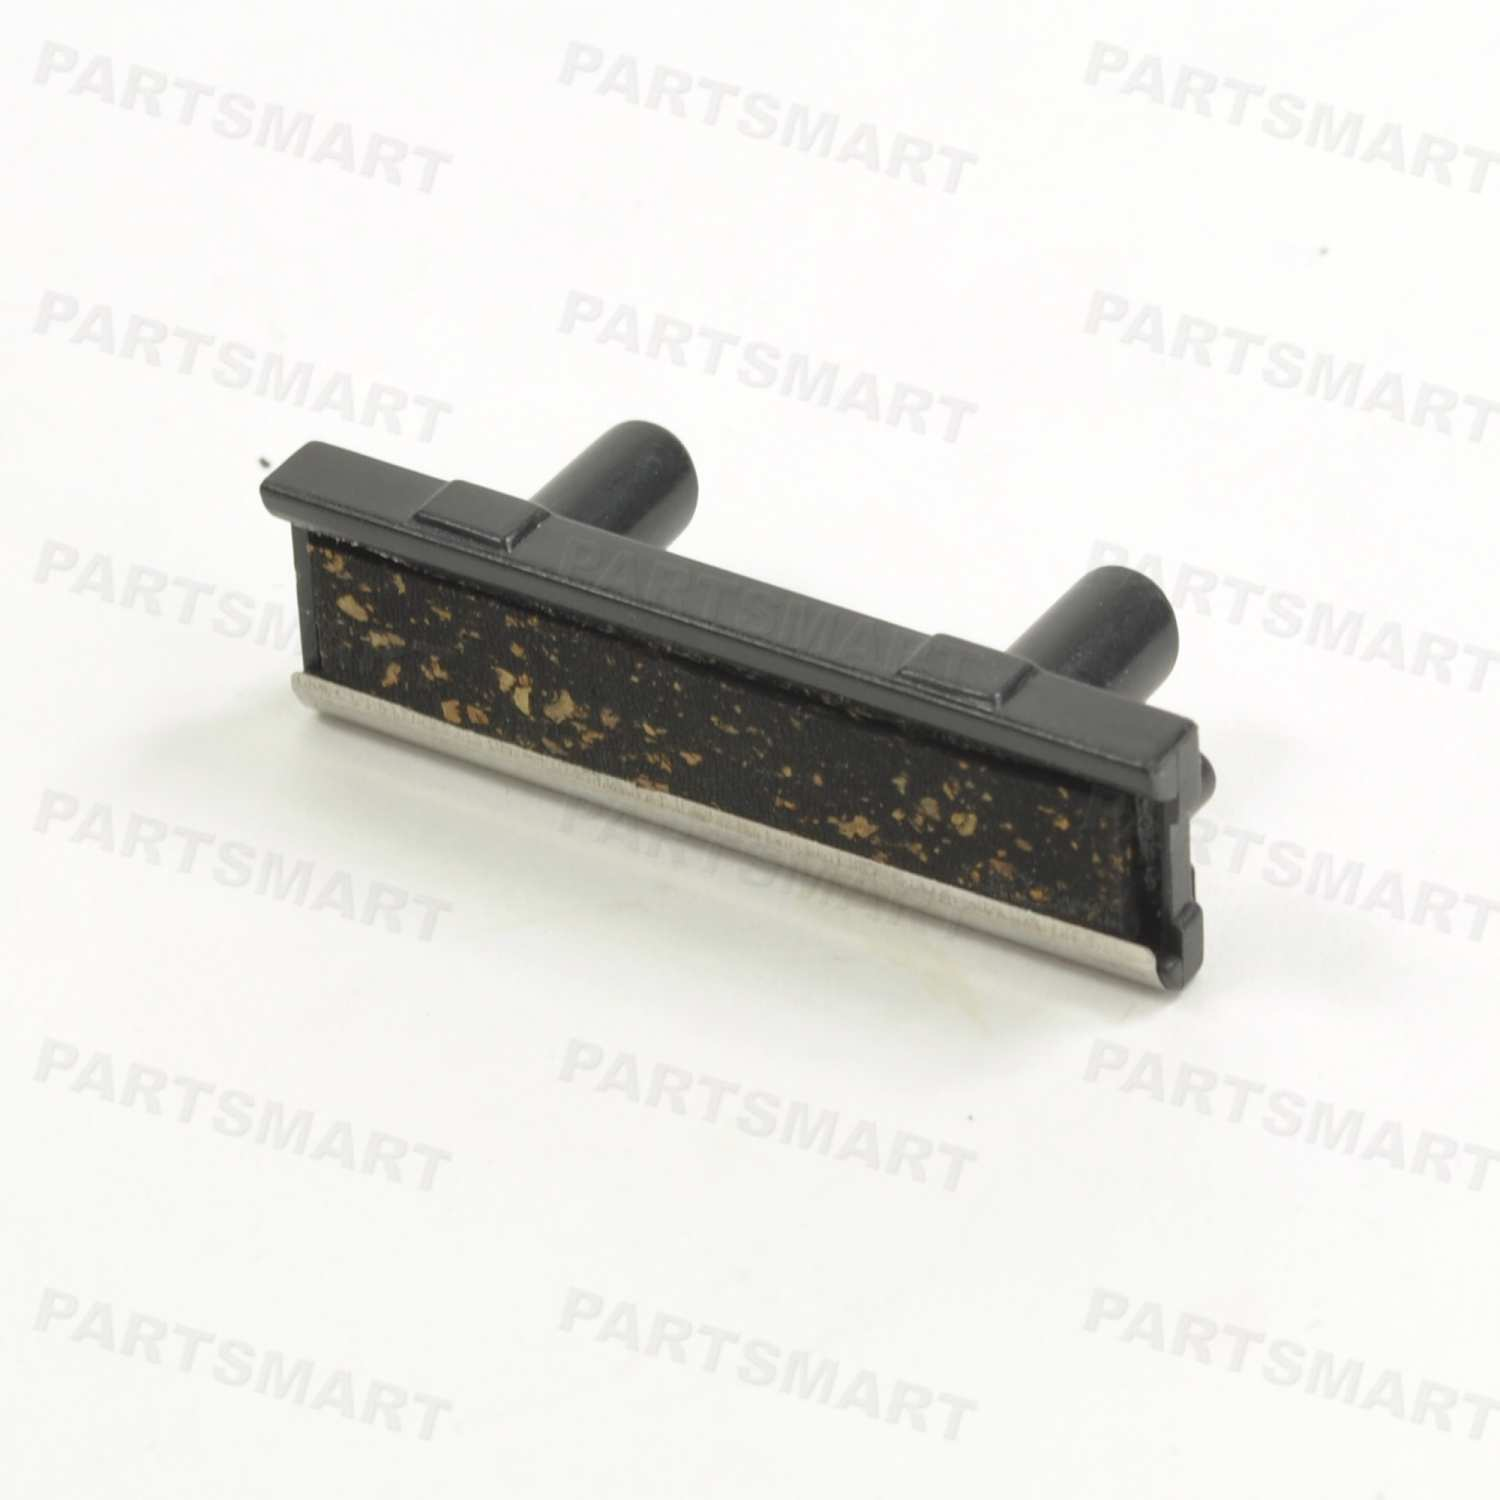 RF5-0302-000 Separation Pad, Tray 1 for Canon LaserJet 4V, BX